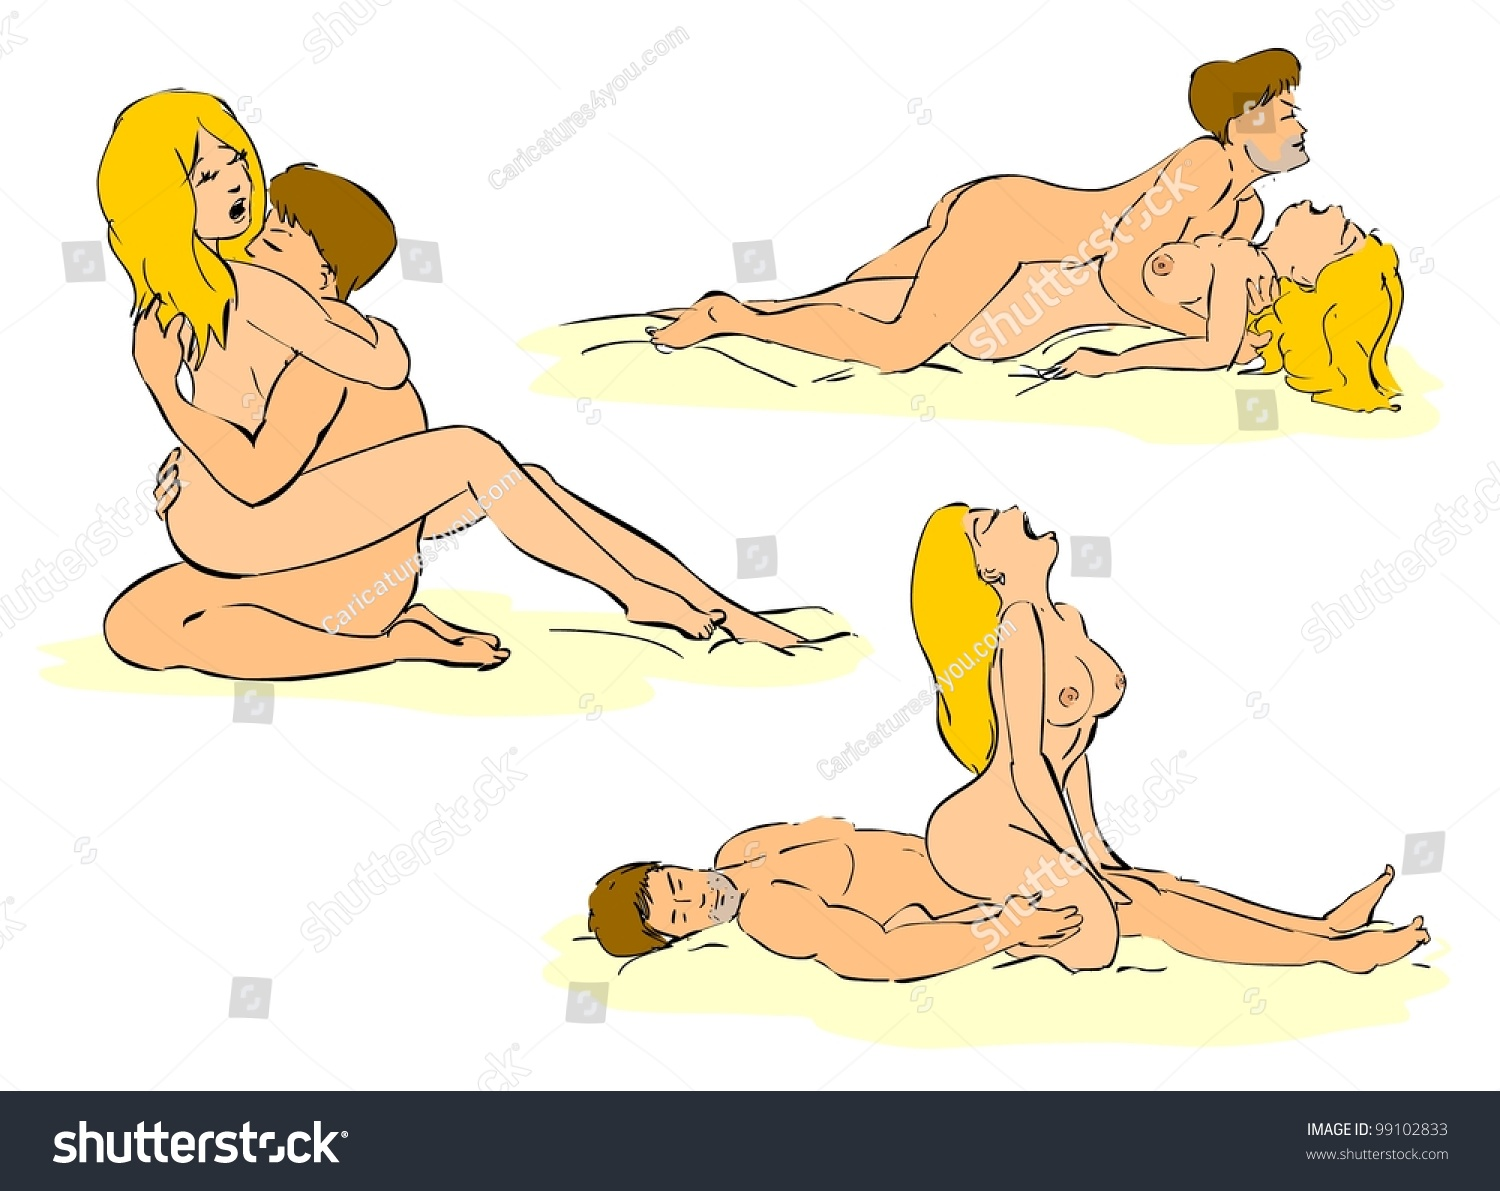 from Brycen pics of different sexual positions